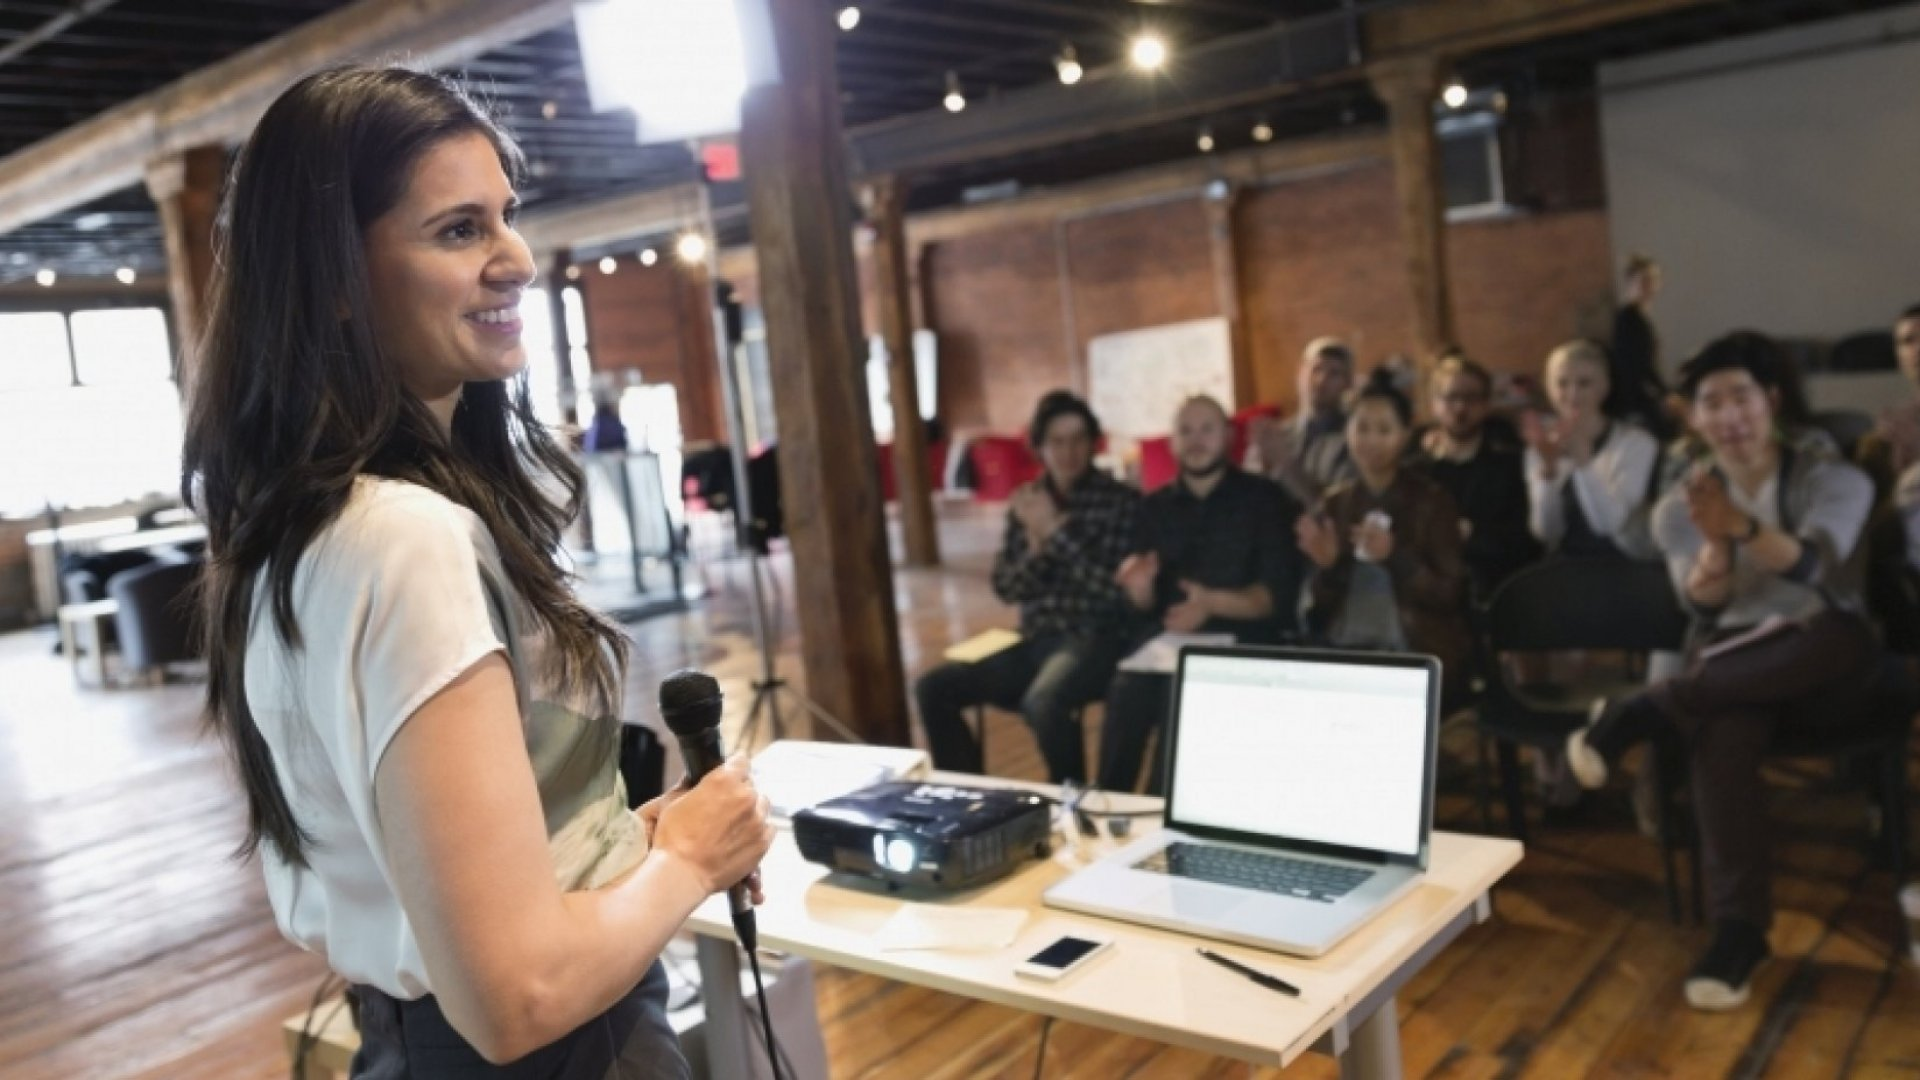 5 Ways to Nail Presenting Your Company